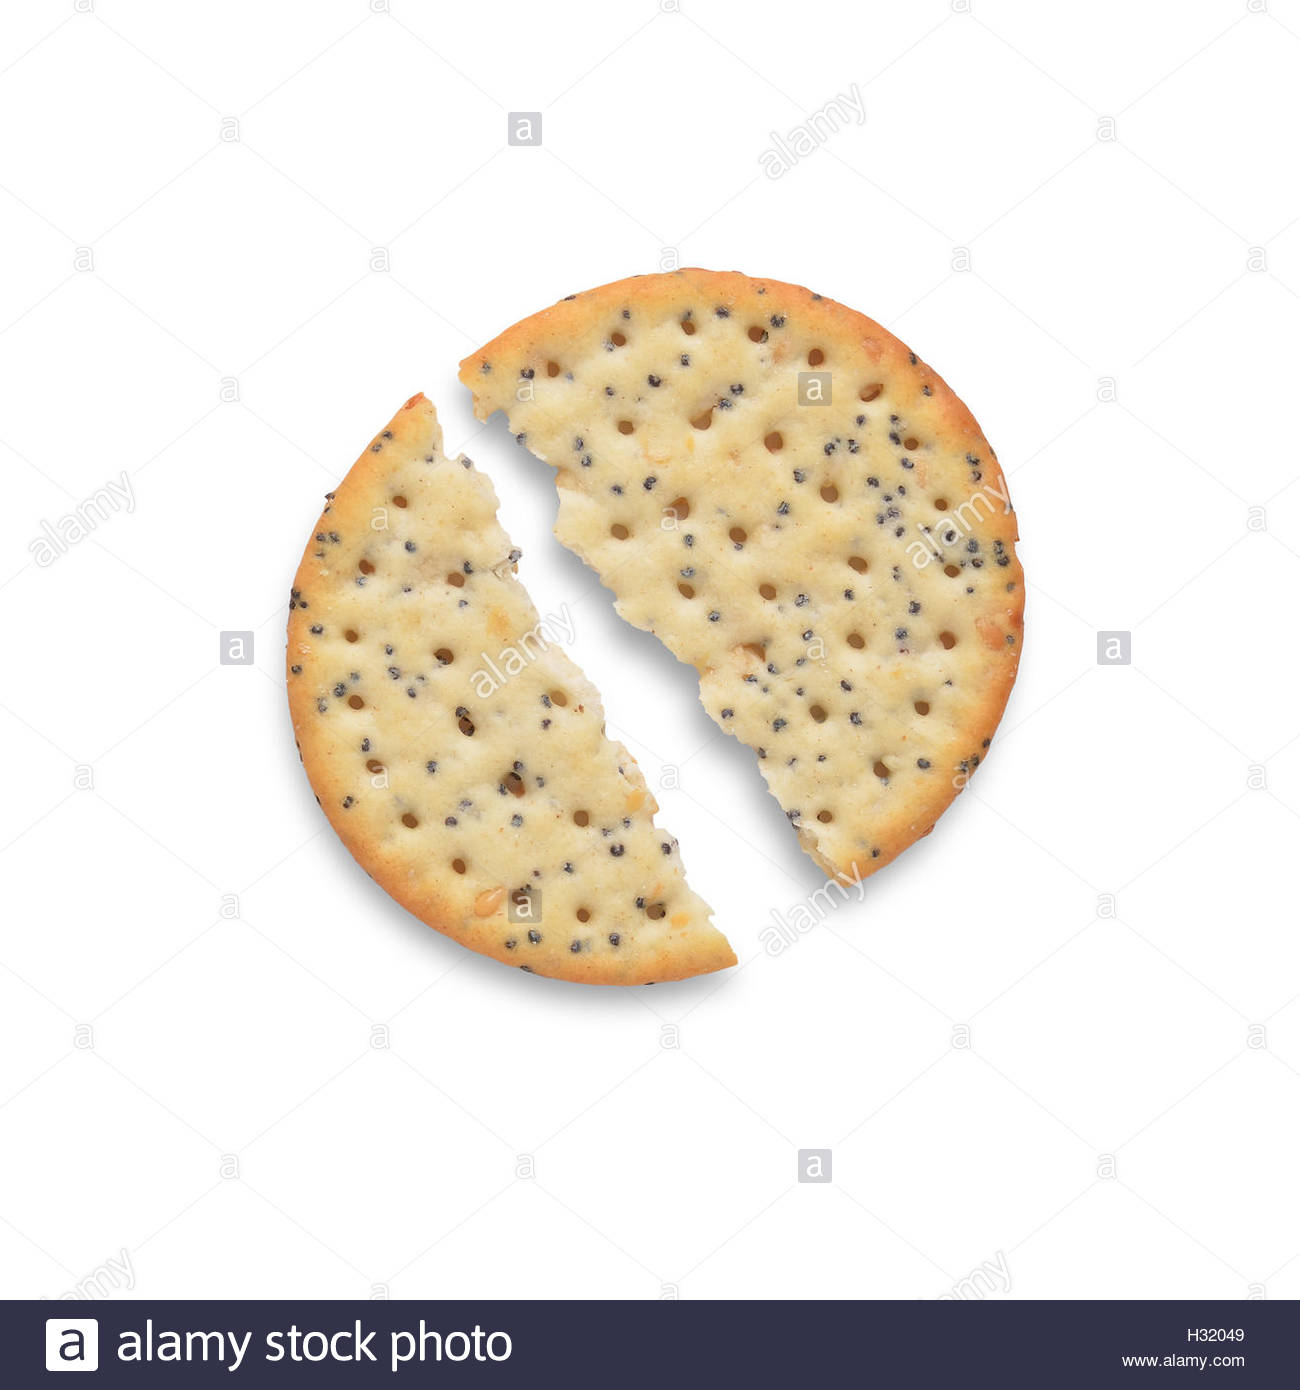 Broken poppy and sesame seed cracker isolated on white background, shot from above - Stock Image